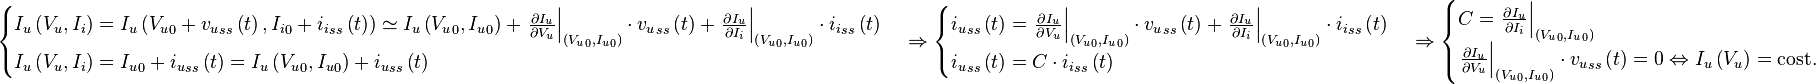 \begin{cases} I_u \left( V_u , I_i \right) = I_u \left( {V_u}_0 + {v_u}_{ss} \left( t \right) , {I_i}_0 + {i_i}_{ss} \left( t \right) \right) \simeq I_u \left( {V_u}_0 , {I_u}_0 \right) + {\left. \frac{\partial I_u}{\partial V_u} \right }_{\left( {V_u}_0 , {I_u}_0 \right)} \cdot {v_u}_{ss} \left( t \right) + {\left. \frac{\partial I_u}{\partial I_i} \right }_{\left( {V_u}_0 , {I_u}_0 \right)} \cdot {i_i}_{ss} \left( t \right) \\ I_u \left( V_u , I_i \right) = {I_u}_0 + {i_u}_{ss} \left( t \right) = I_u \left( {V_u}_0 , {I_u}_0 \right) + {i_u}_{ss} \left( t \right) \end{cases} \Rightarrow \begin{cases} {i_u}_{ss} \left( t \right) = {\left. \frac{\partial I_u}{\partial V_u} \right }_{\left( {V_u}_0, {I_u}_0 \right)} \cdot {v_u}_{ss} \left( t \right) + {\left. \frac{\partial I_u}{\partial I_i} \right }_{\left( {V_u}_0 , {I_u}_0 \right)} \cdot {i_i}_{ss} \left( t \right) \\ {i_u}_{ss} \left( t \right) = C \cdot {i_i}_{ss} \left( t \right) \end{cases} \Rightarrow \begin{cases} C= {\left. \frac{\partial I_u}{\partial I_i} \right }_{\left( {V_u}_0 , {I_u}_0 \right)} \\ {\left. \frac{\partial I_u}{\partial V_u} \right }_{\left( {V_u}_0 , {I_u}_0 \right)} \cdot {v_u}_{ss} \left( t \right) = 0 \Leftrightarrow I_u \left( V_u \right) = \text{cost.} \end{cases}